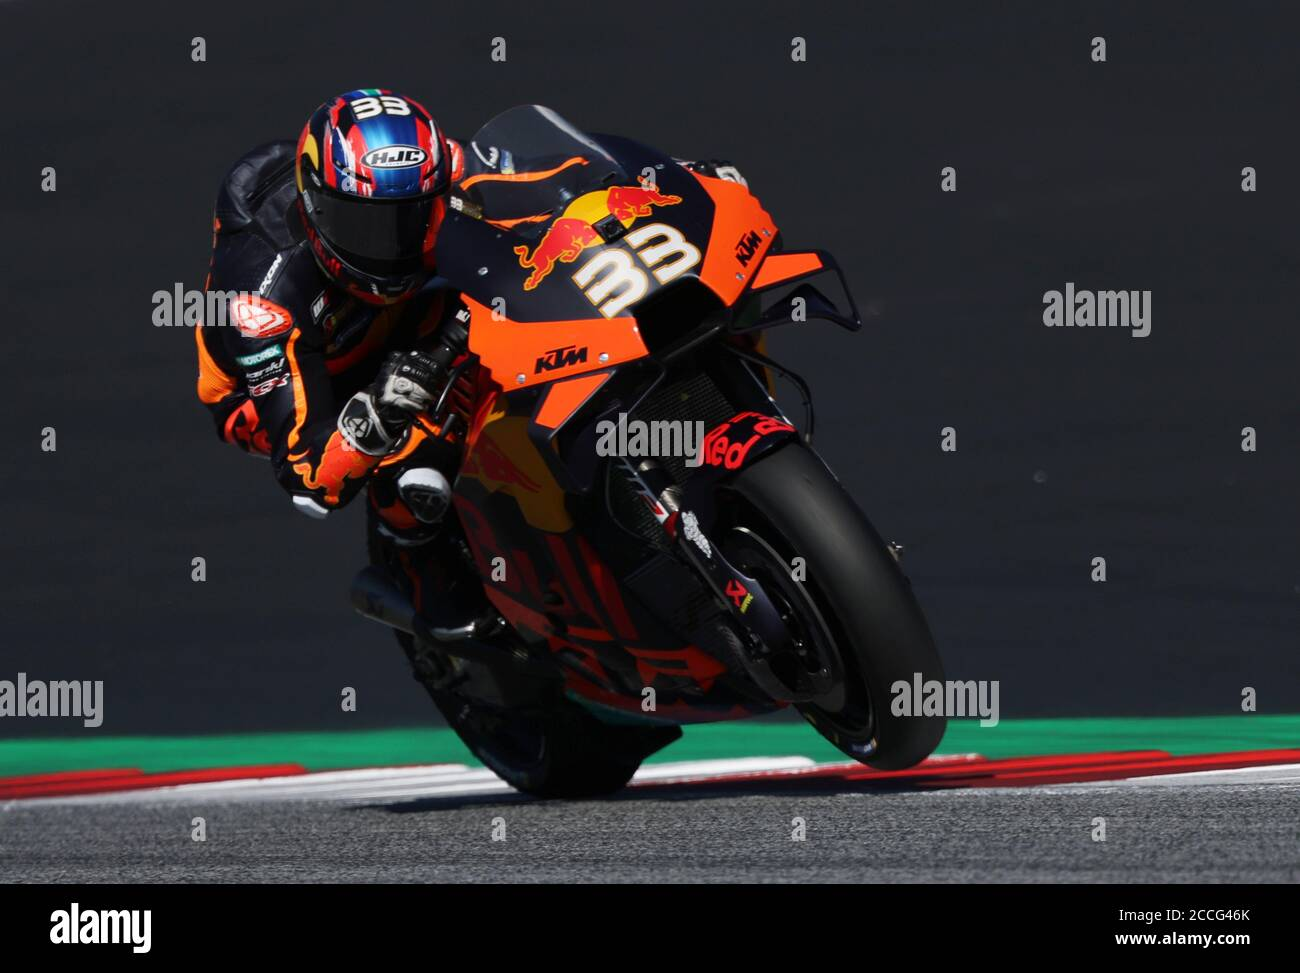 Brad Binder High Resolution Stock Photography And Images Alamy